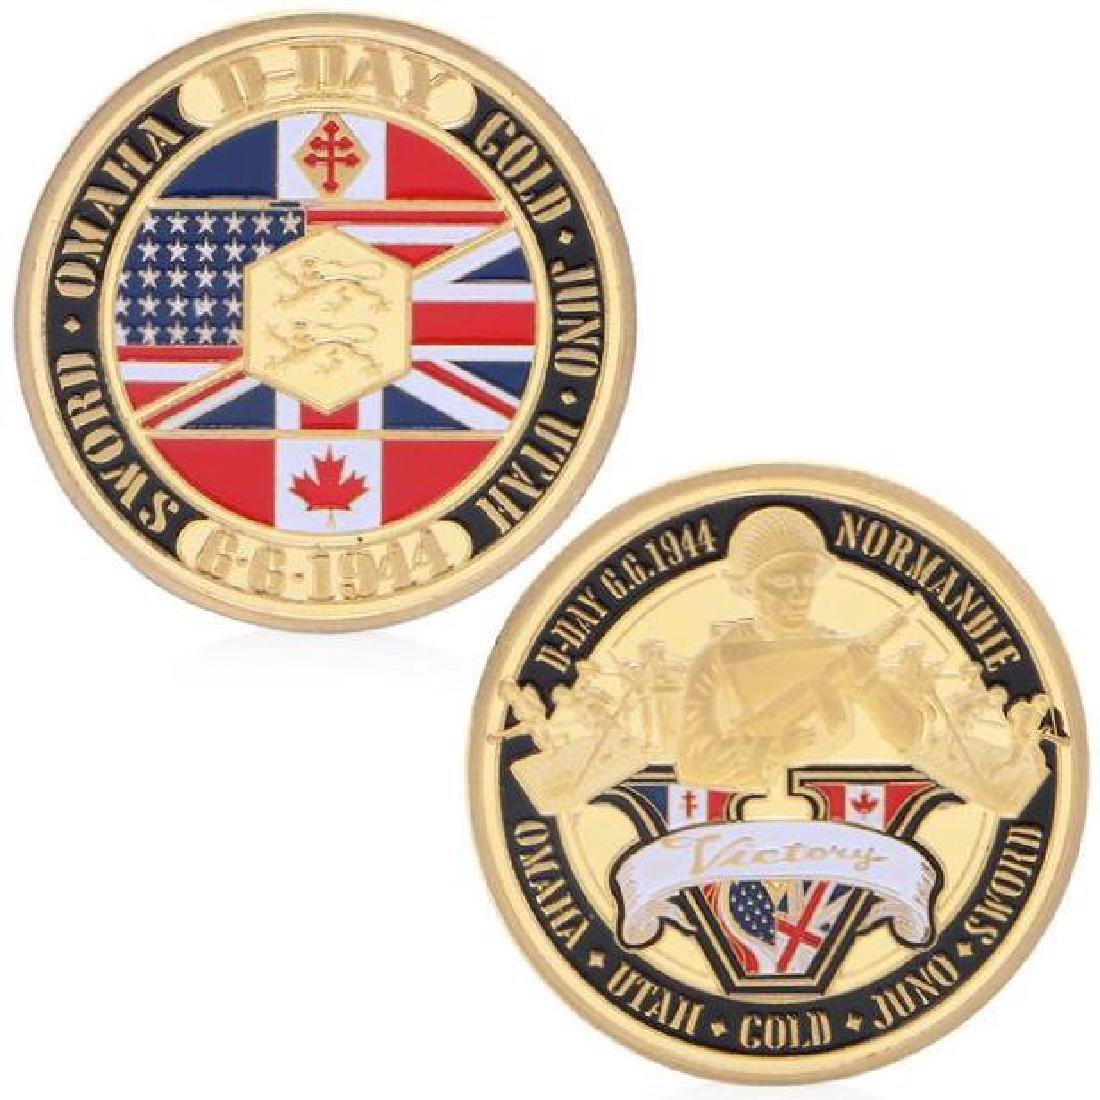 D-Day Victory Colored Gold Clad Challenge Coin